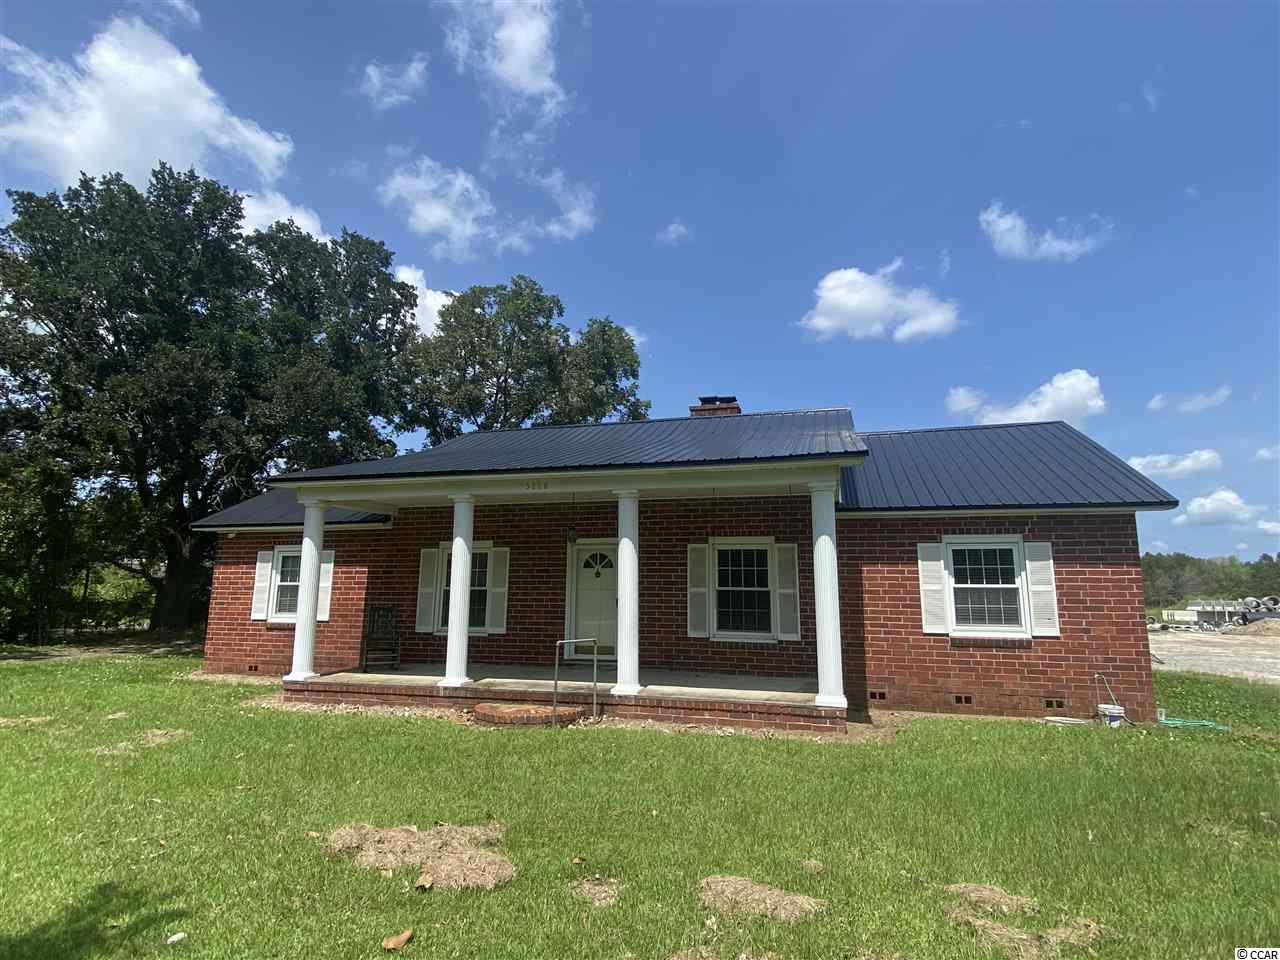 Outside the city limits, and between Georgetown and Andrews, this 3 Bedroom, 1 Bath brick ranch home sits on 1 acre. With a newer metal roof and HVAC, just bring your imagination and plan to update this solid brick home. Hardwood floors, double fireplace, newer windows, updated bath, you are well on your way to making this house your home!  Dont forget you have great proximity to schools, shopping, churches, local boat landings, rivers and the beaches!